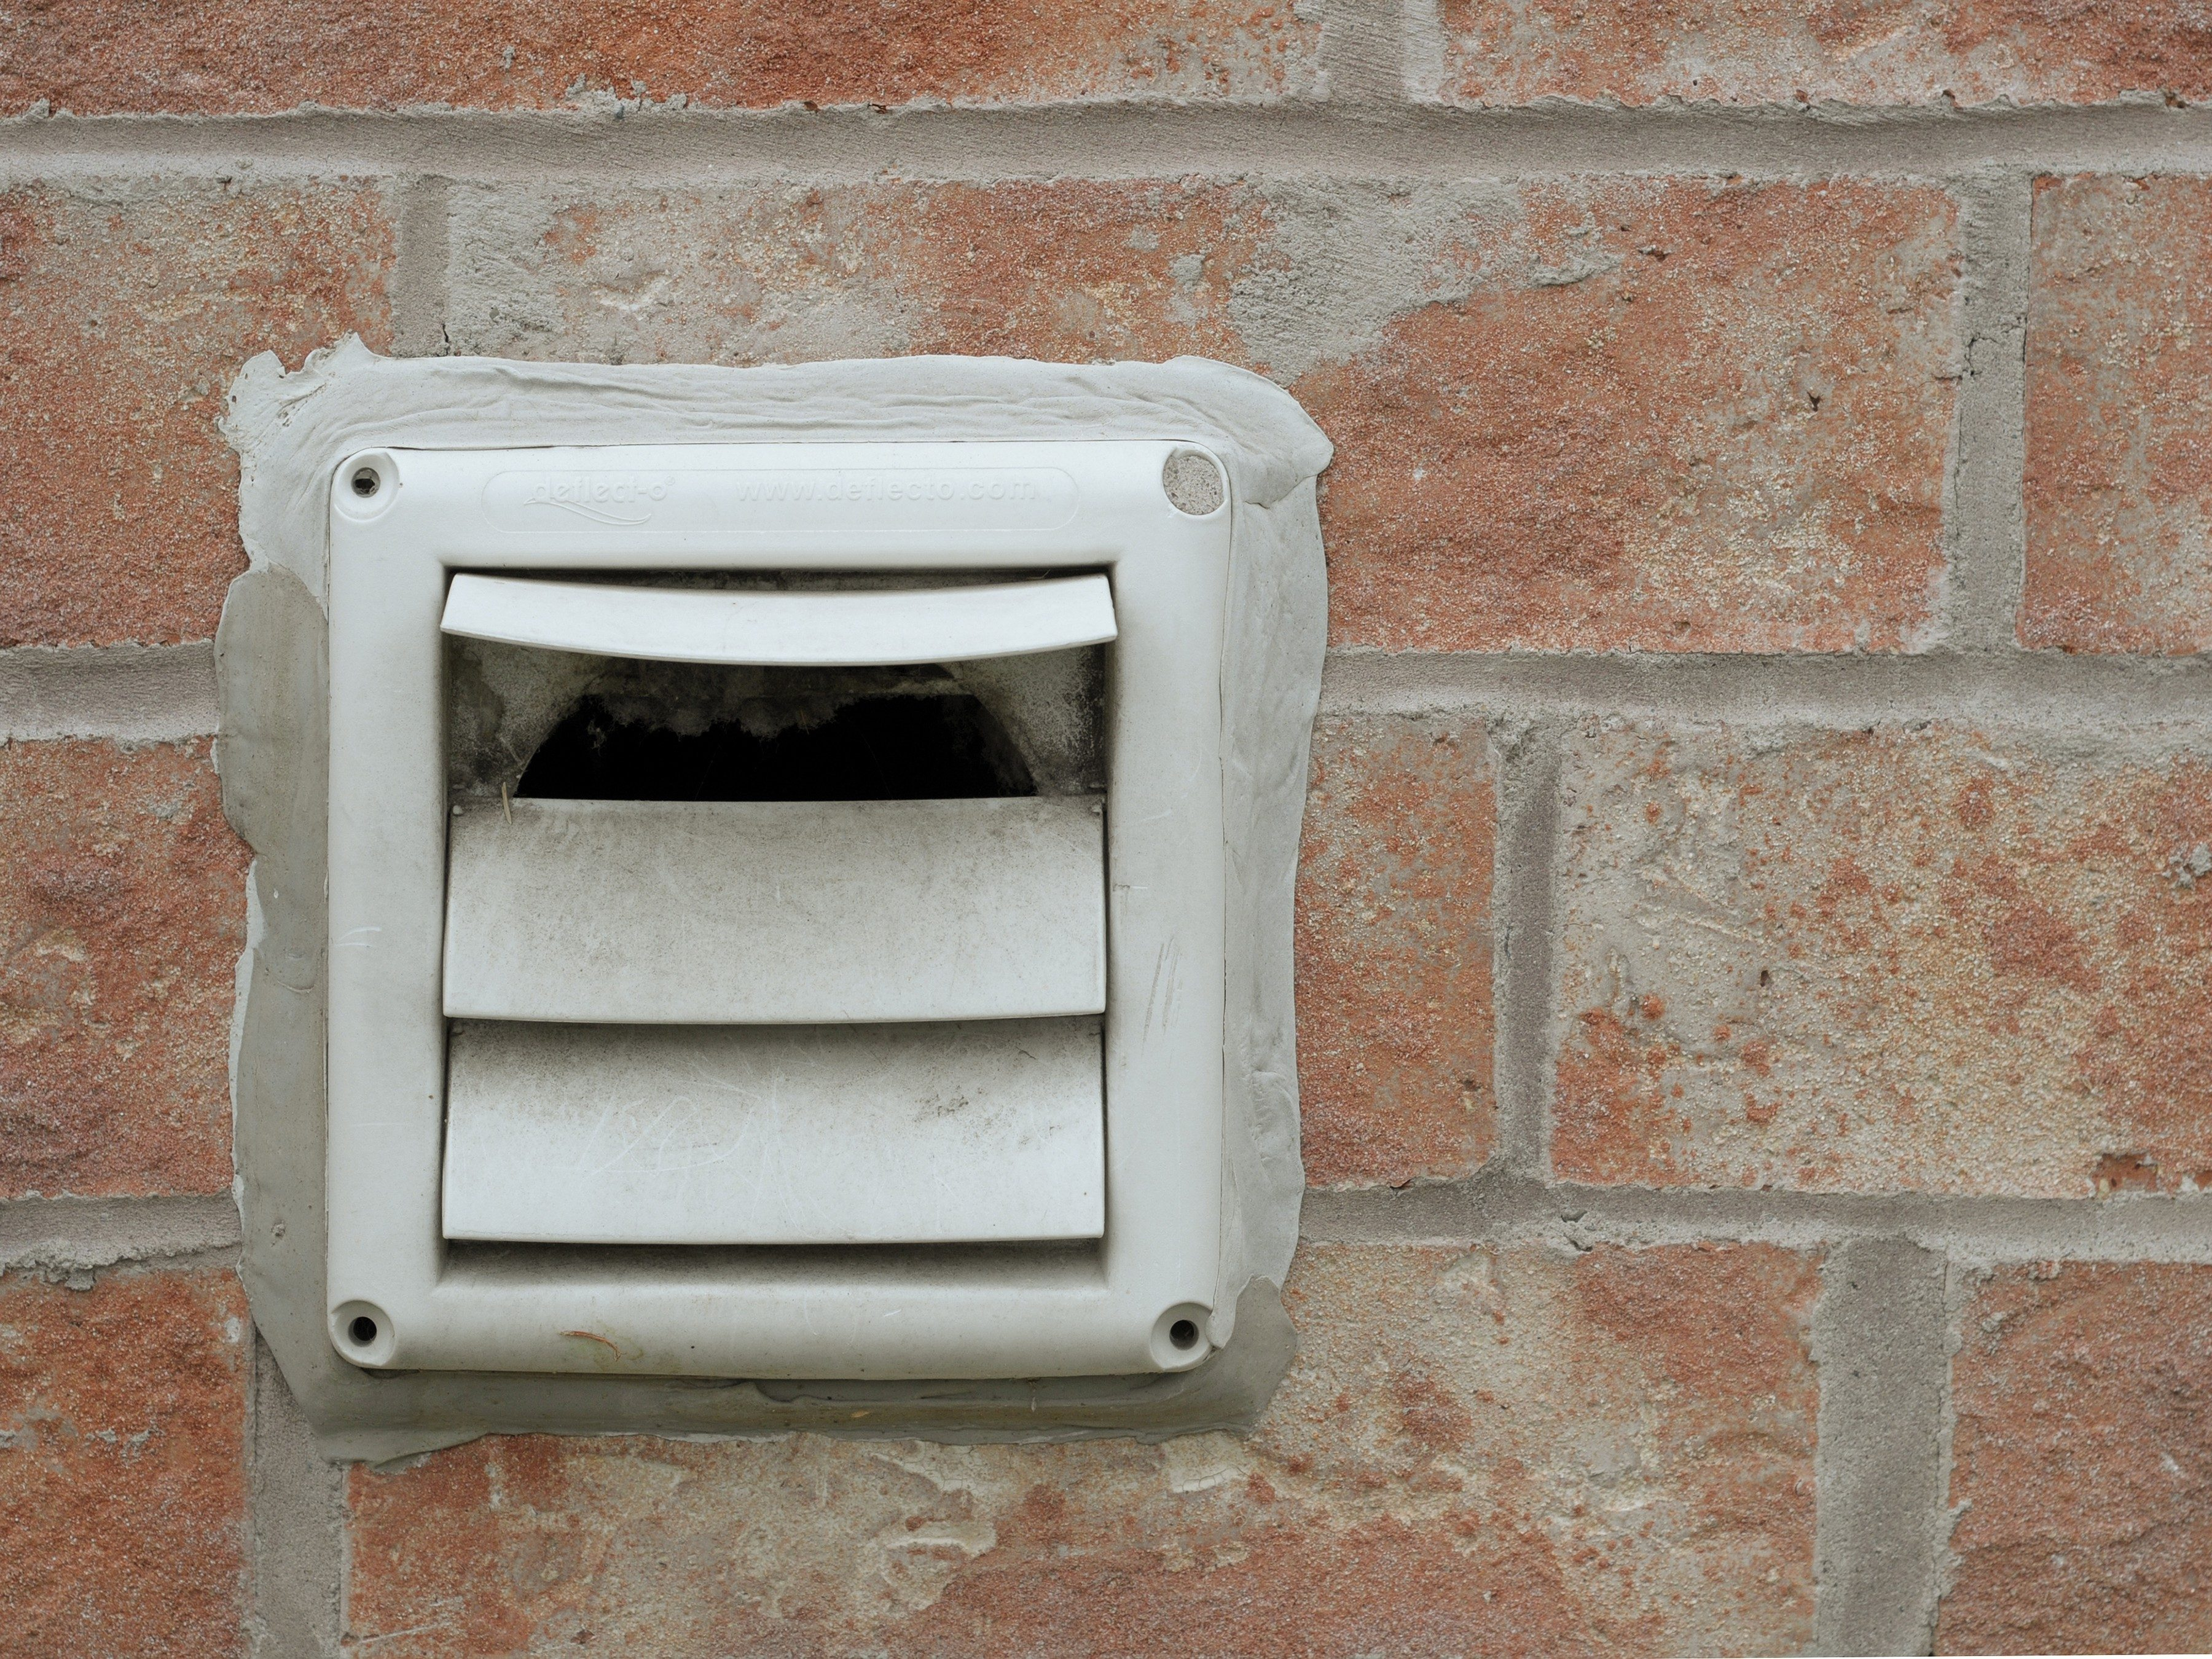 12. Clean Your Dryer Vent From the Outside